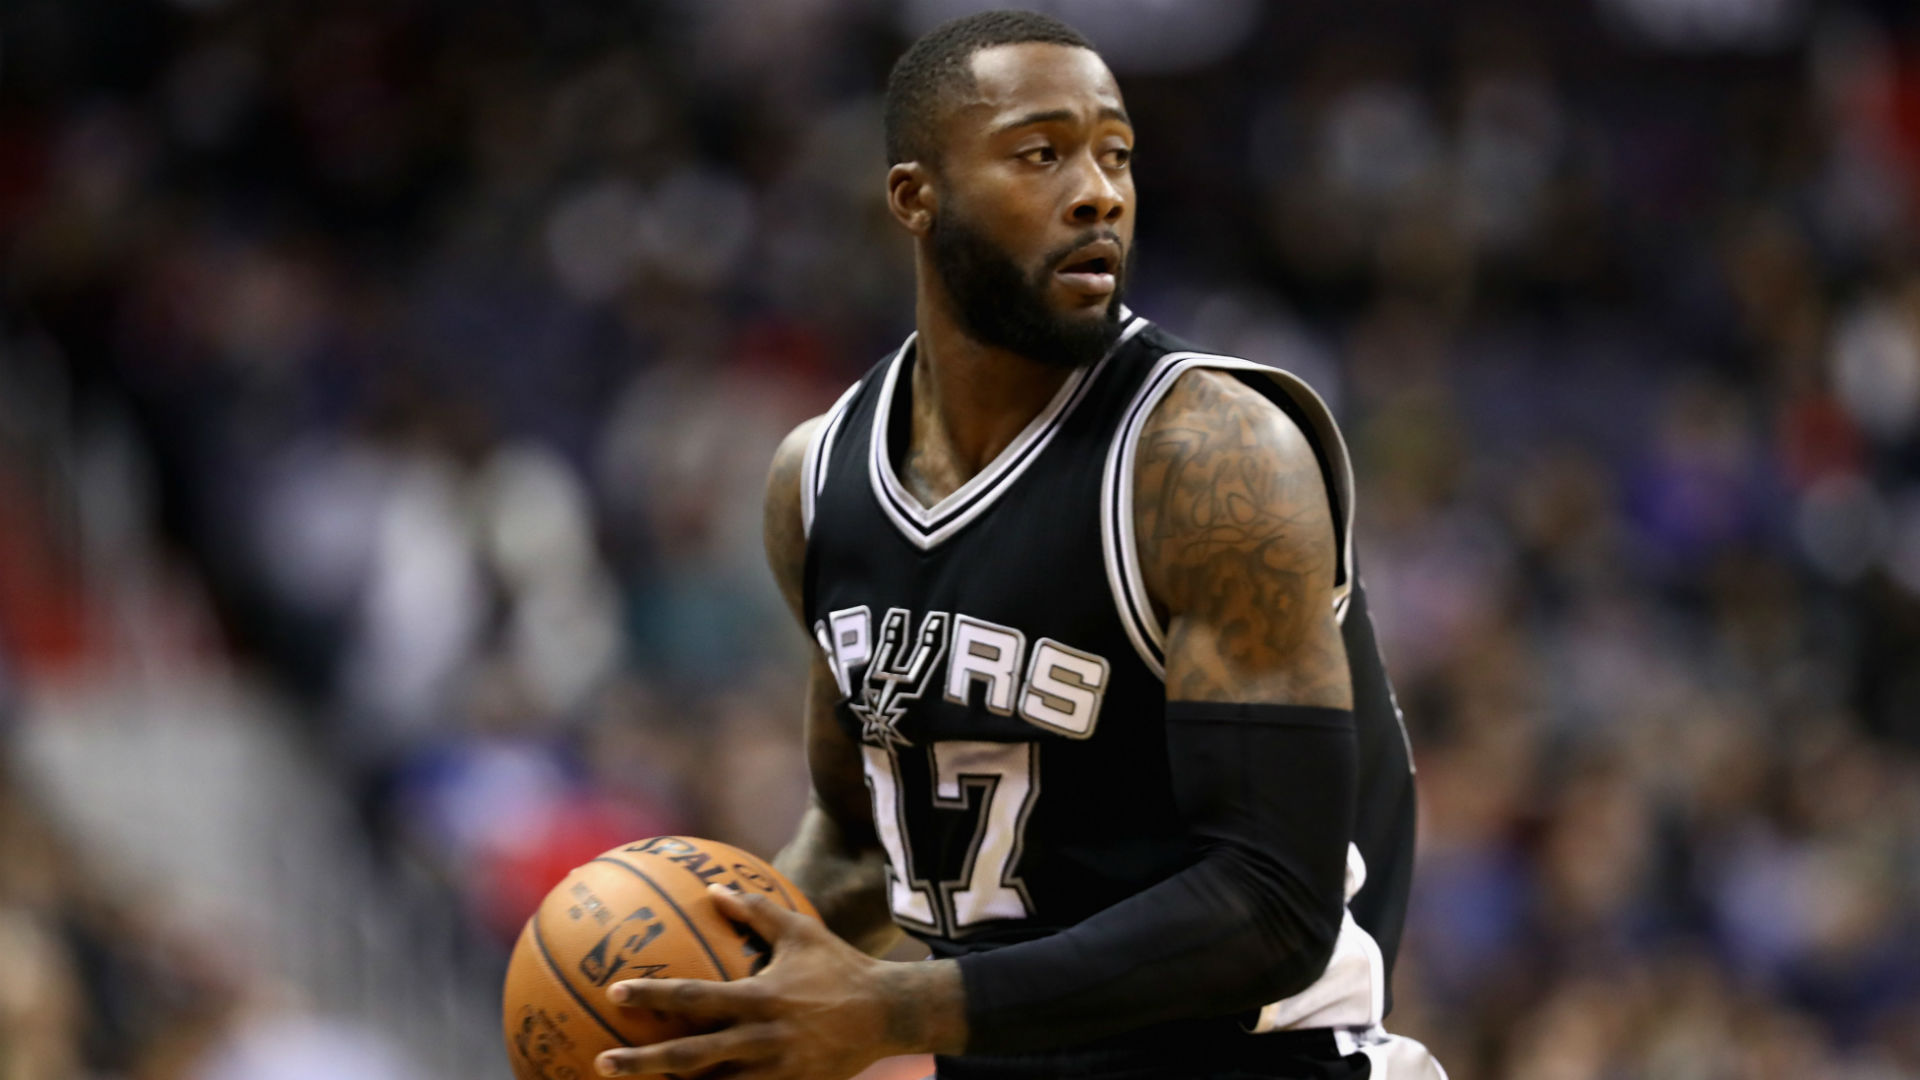 Spurs renounce guard Jonathon Simmons